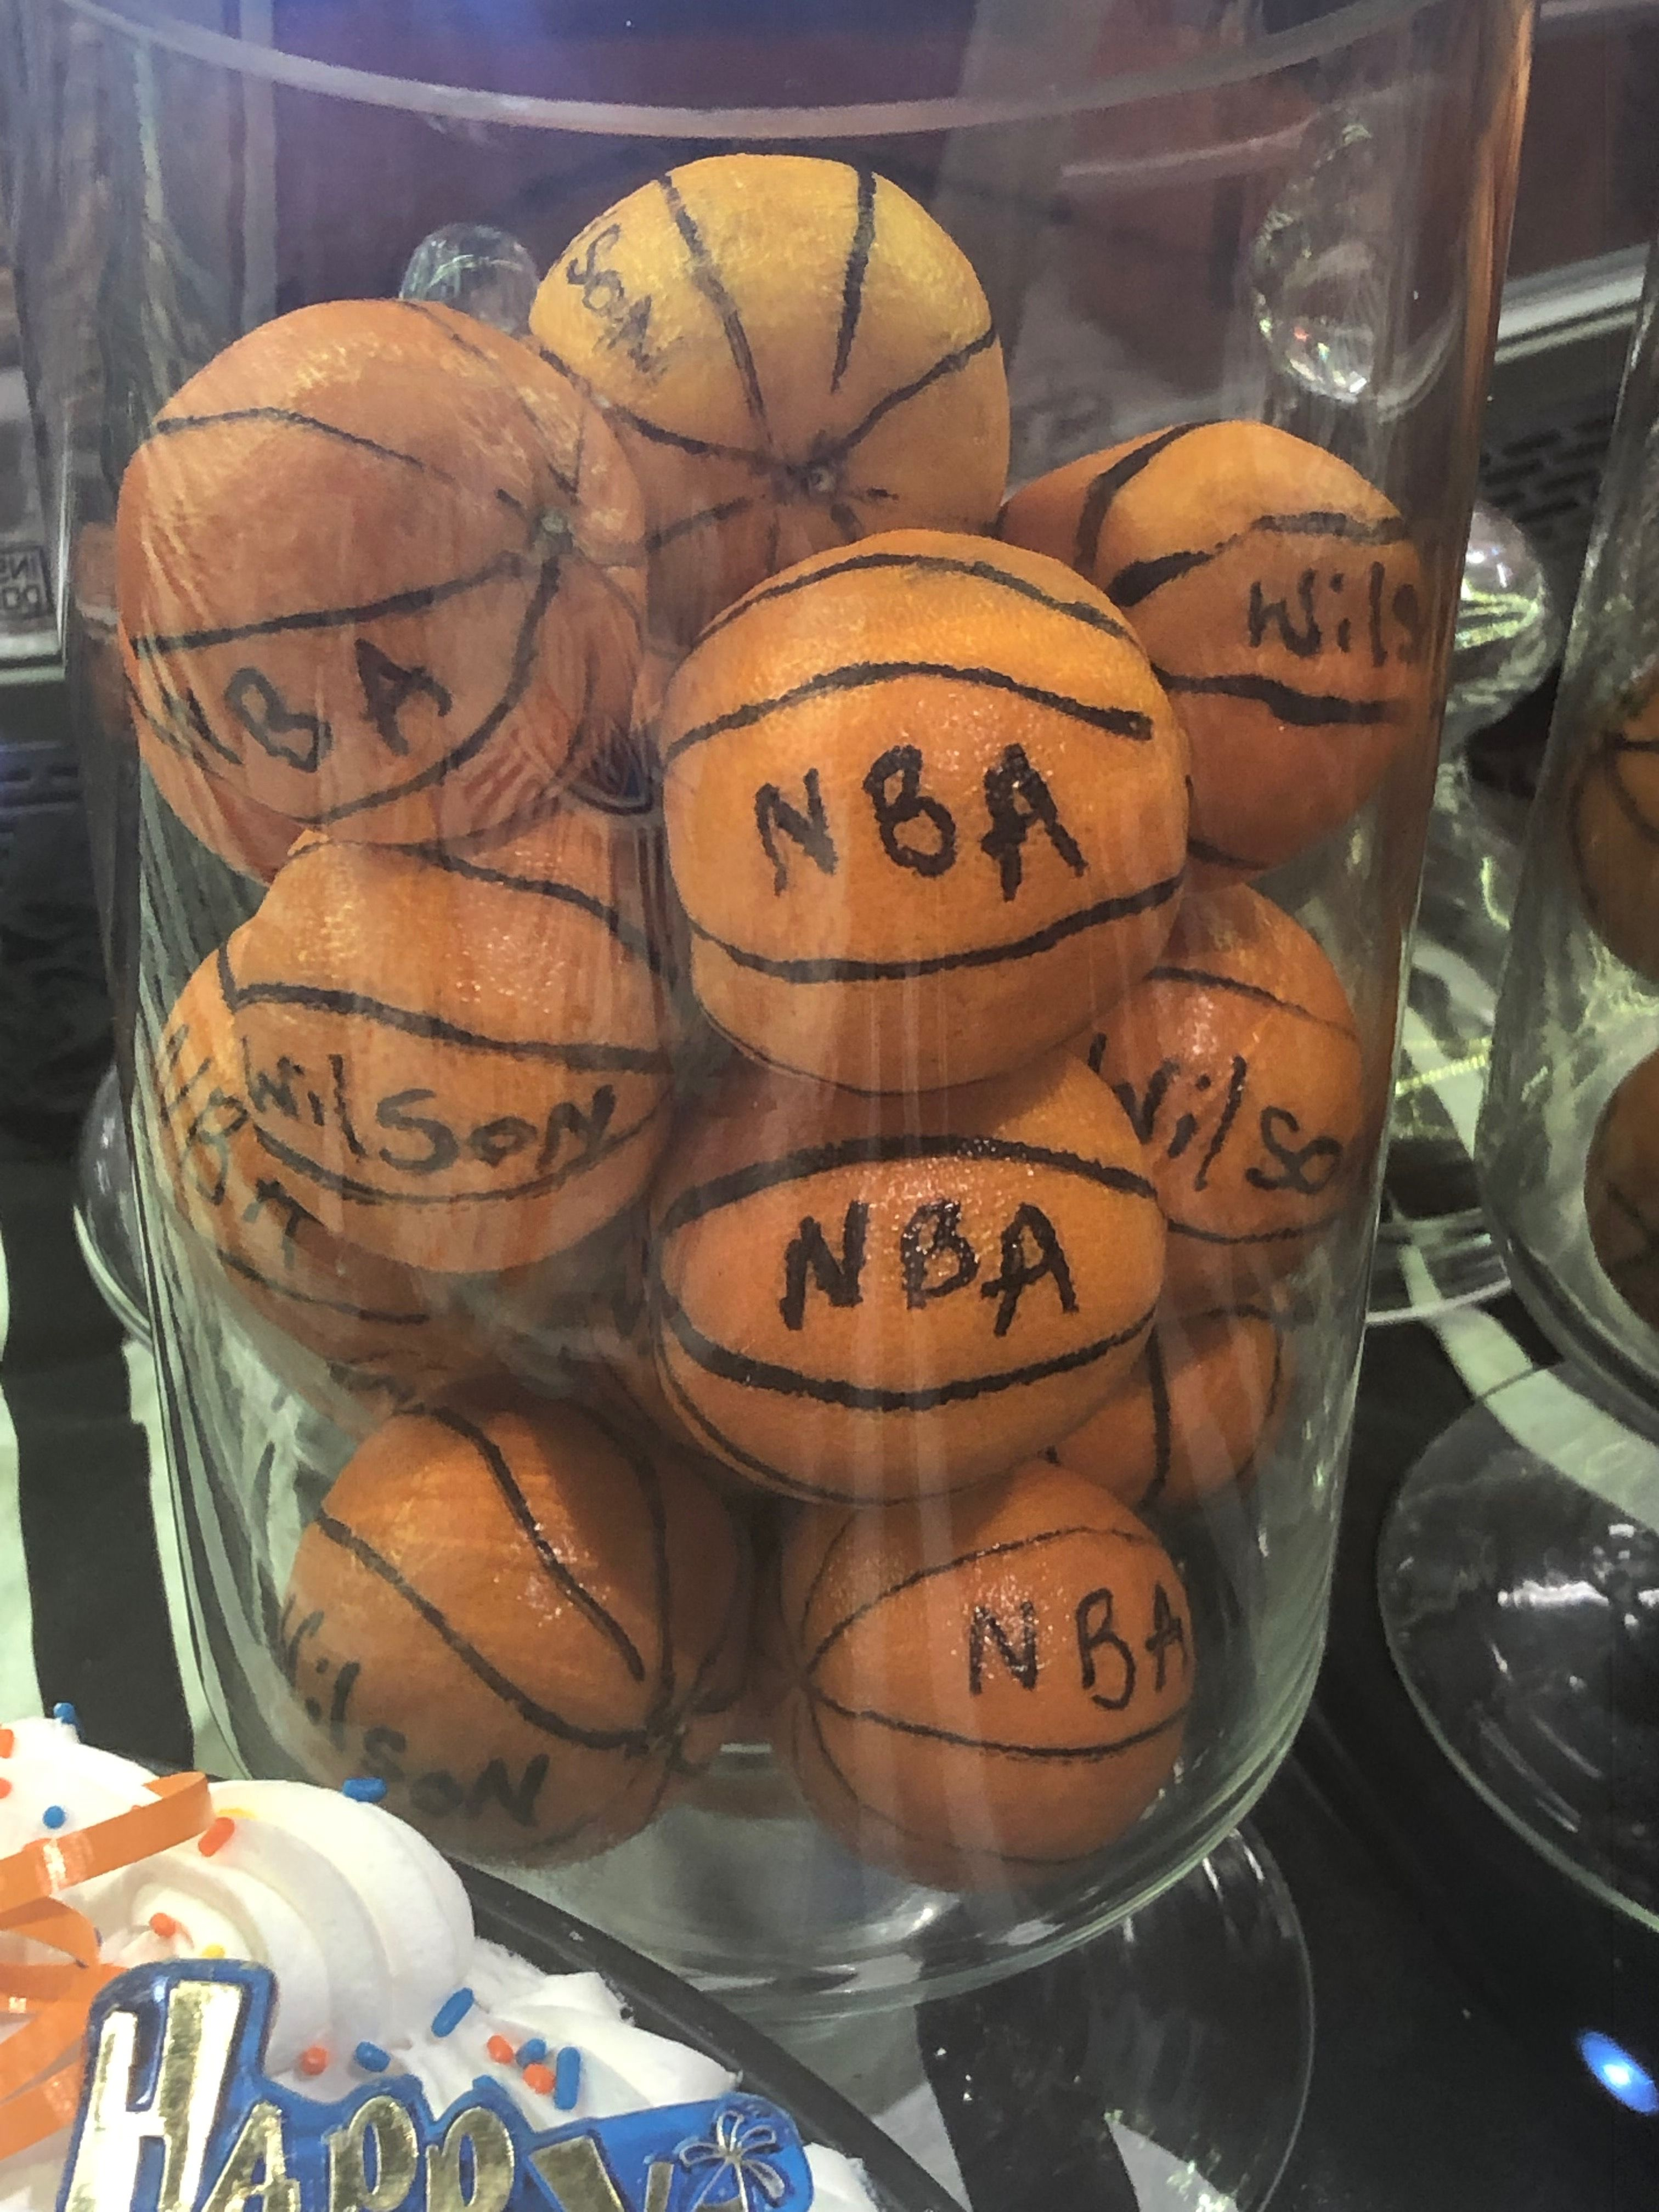 Pin by Caitlin Clements on Game Day Nba, Basketball, Sports